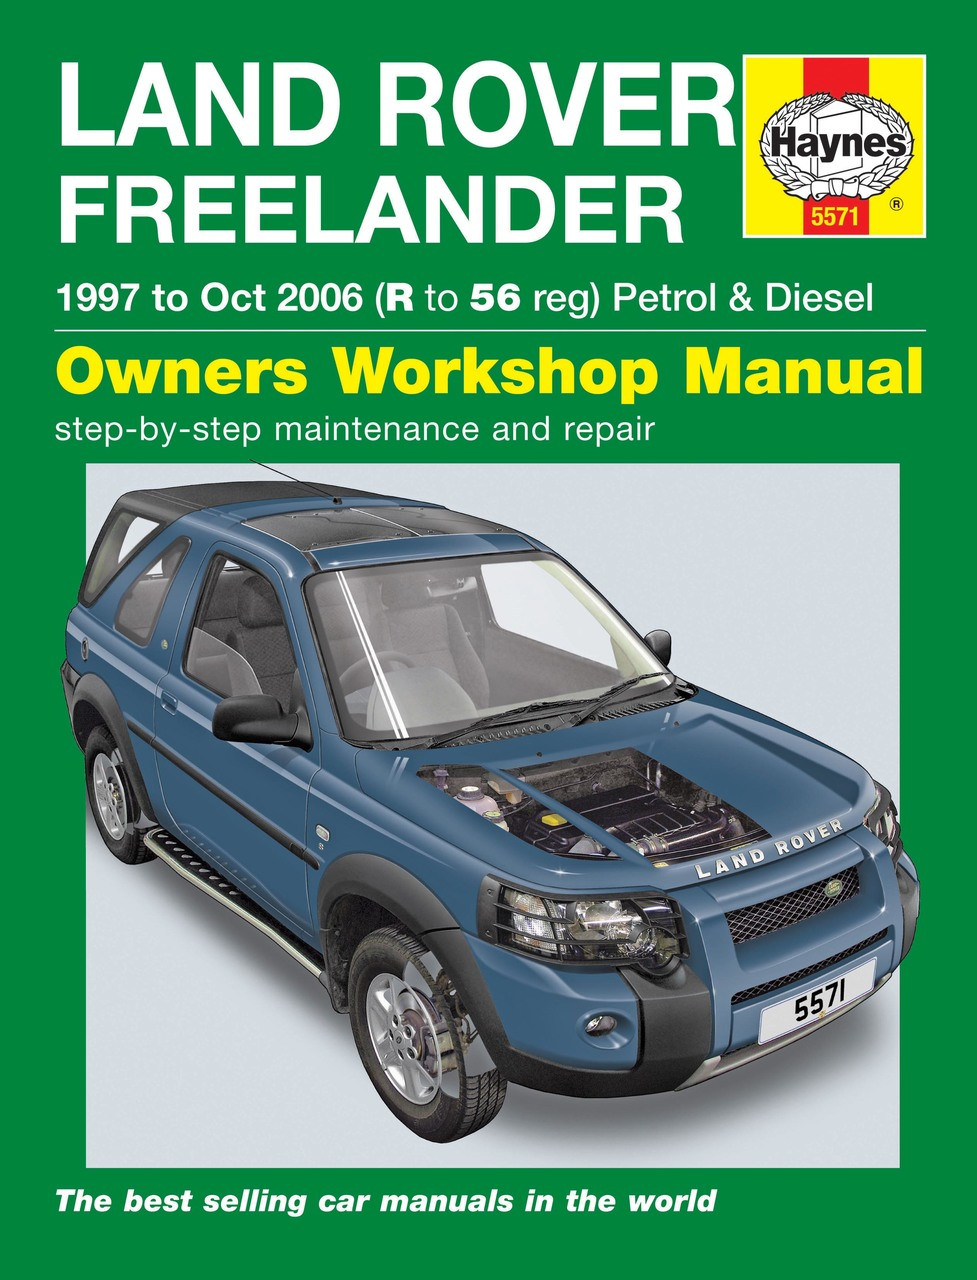 medium resolution of land rover freelander 1997 2006 workshop manual repair diagrams for 2004 land rover freelander engine transmission